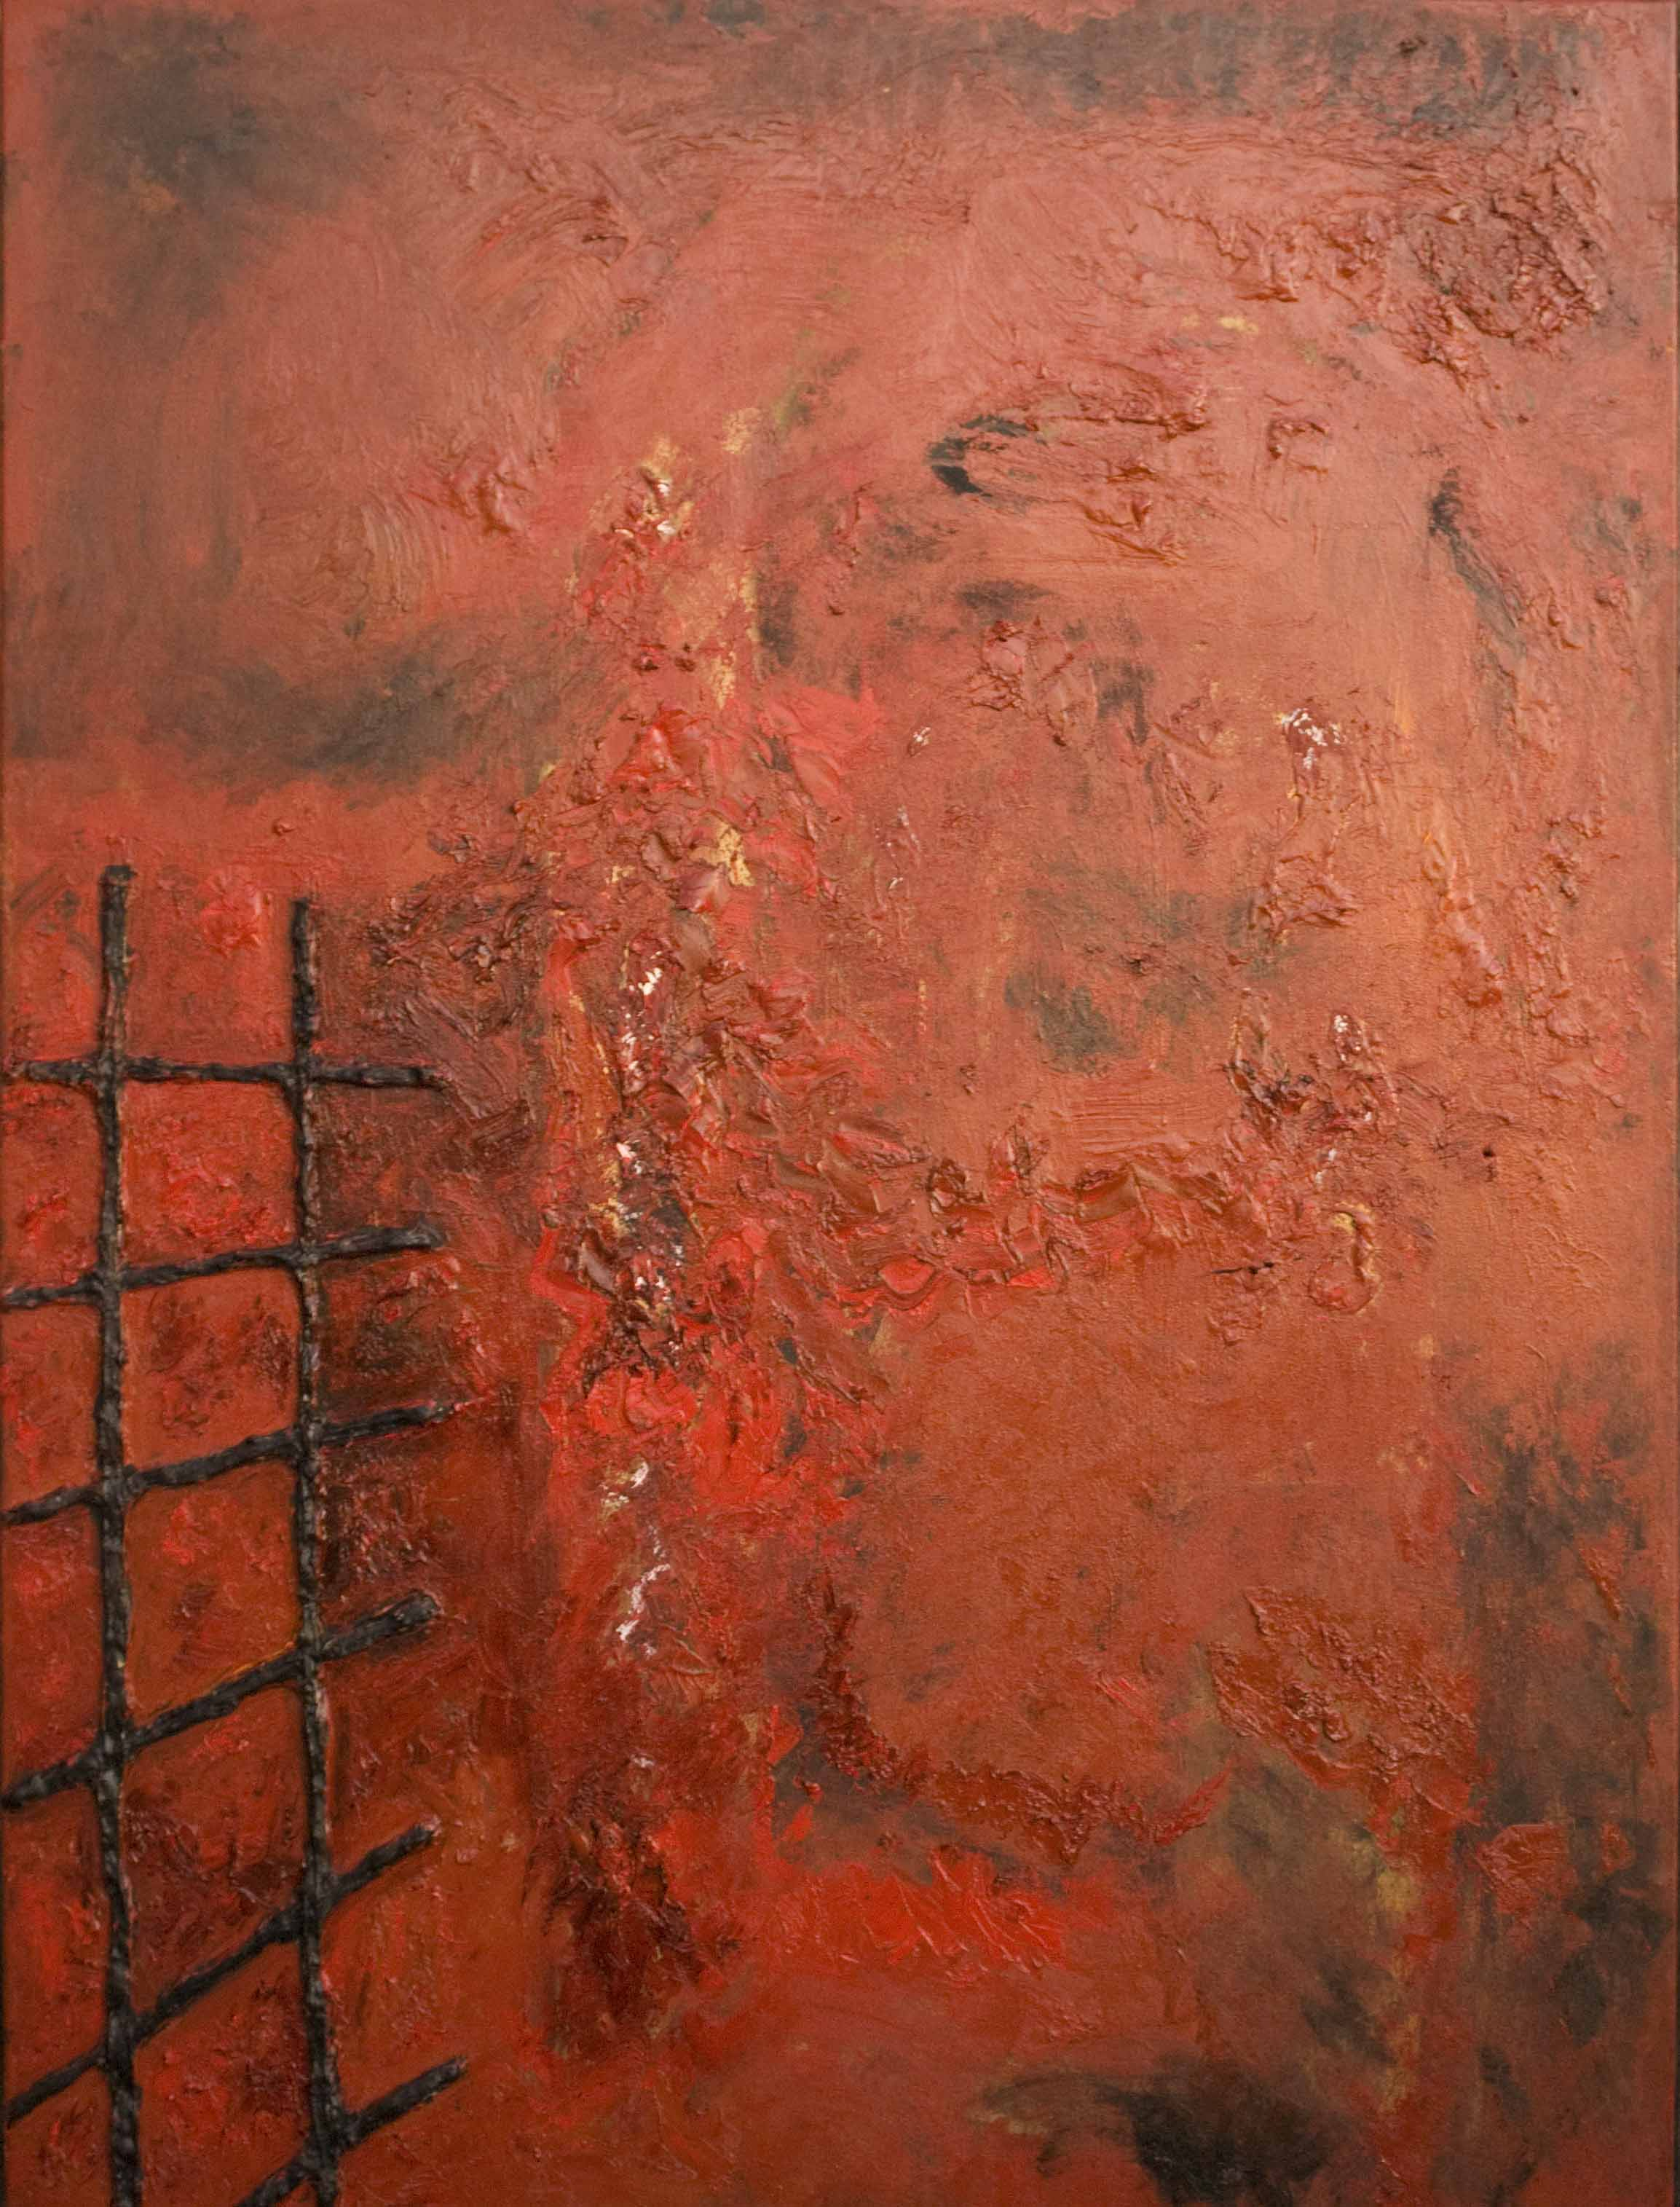 oil on canvasd deep red color field red and black stitches, dramatic